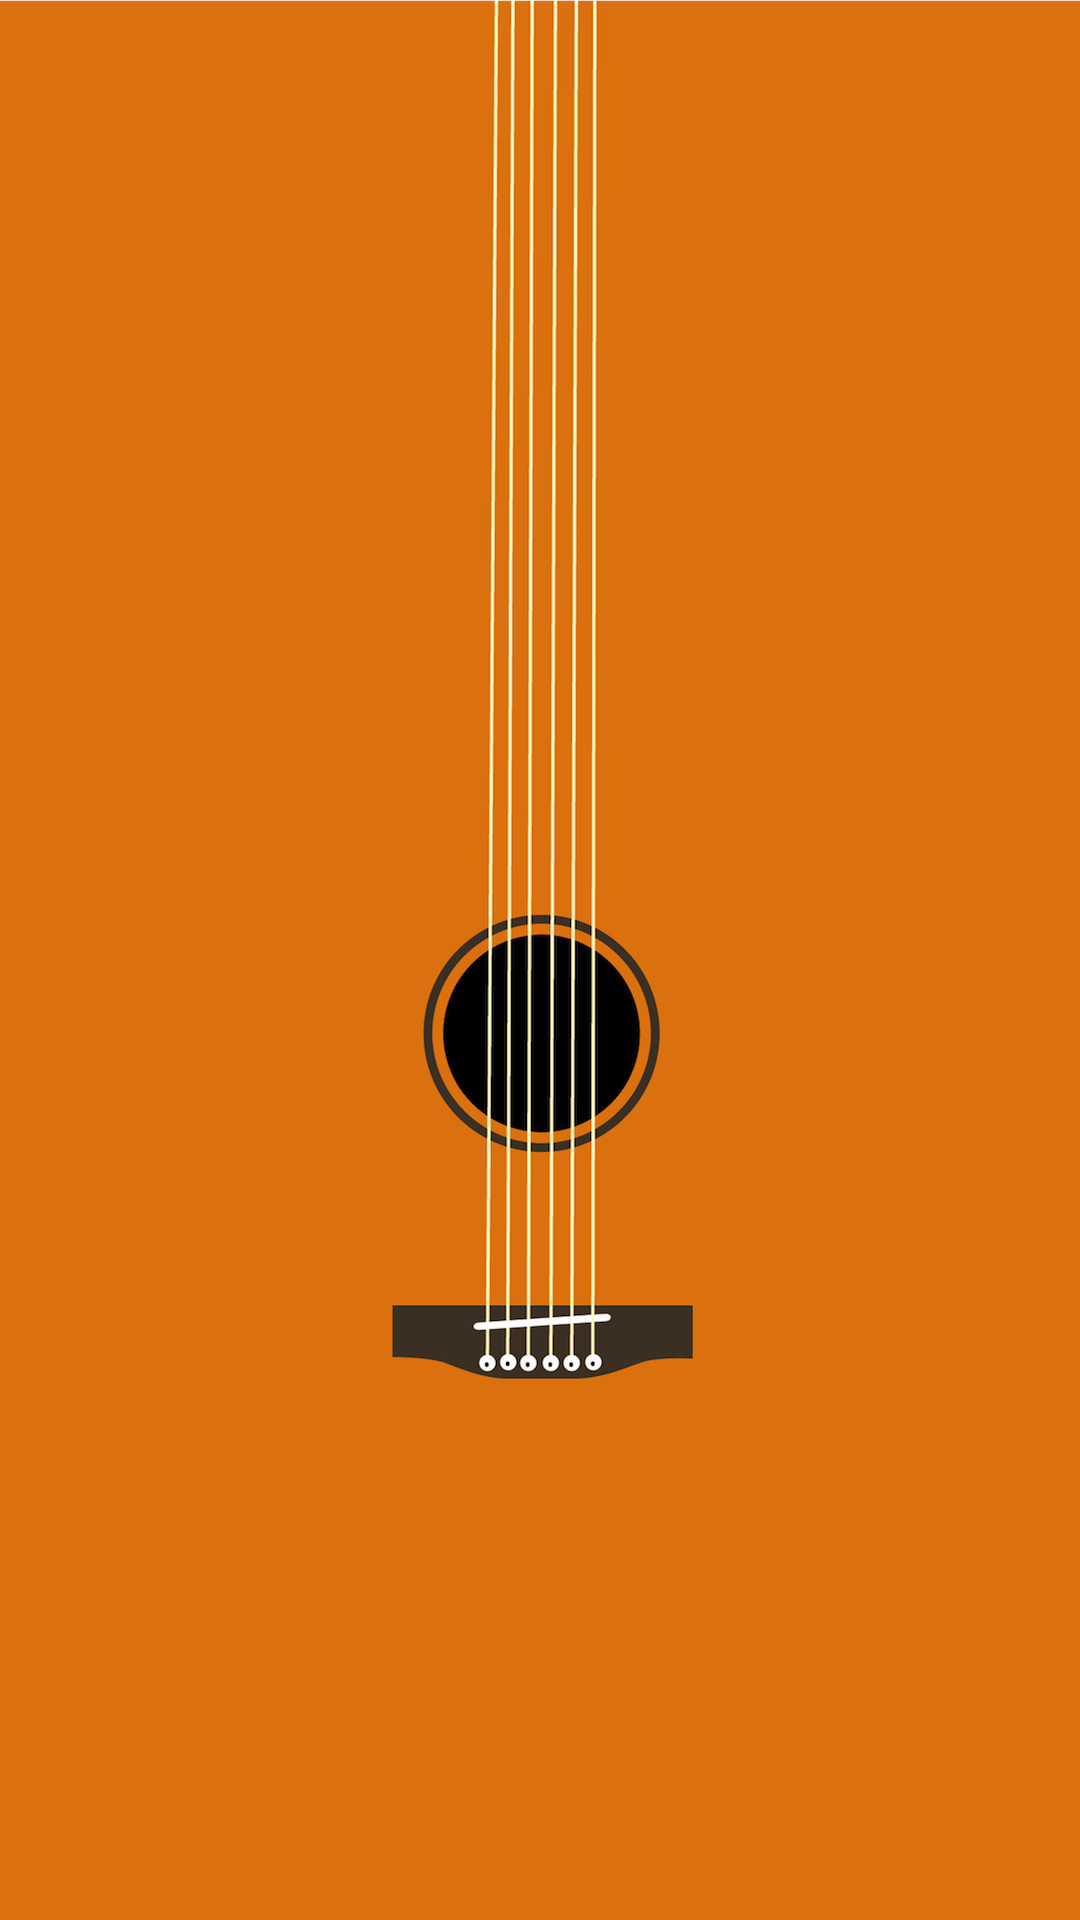 Guitar Iphone Wallpaper 79 Images